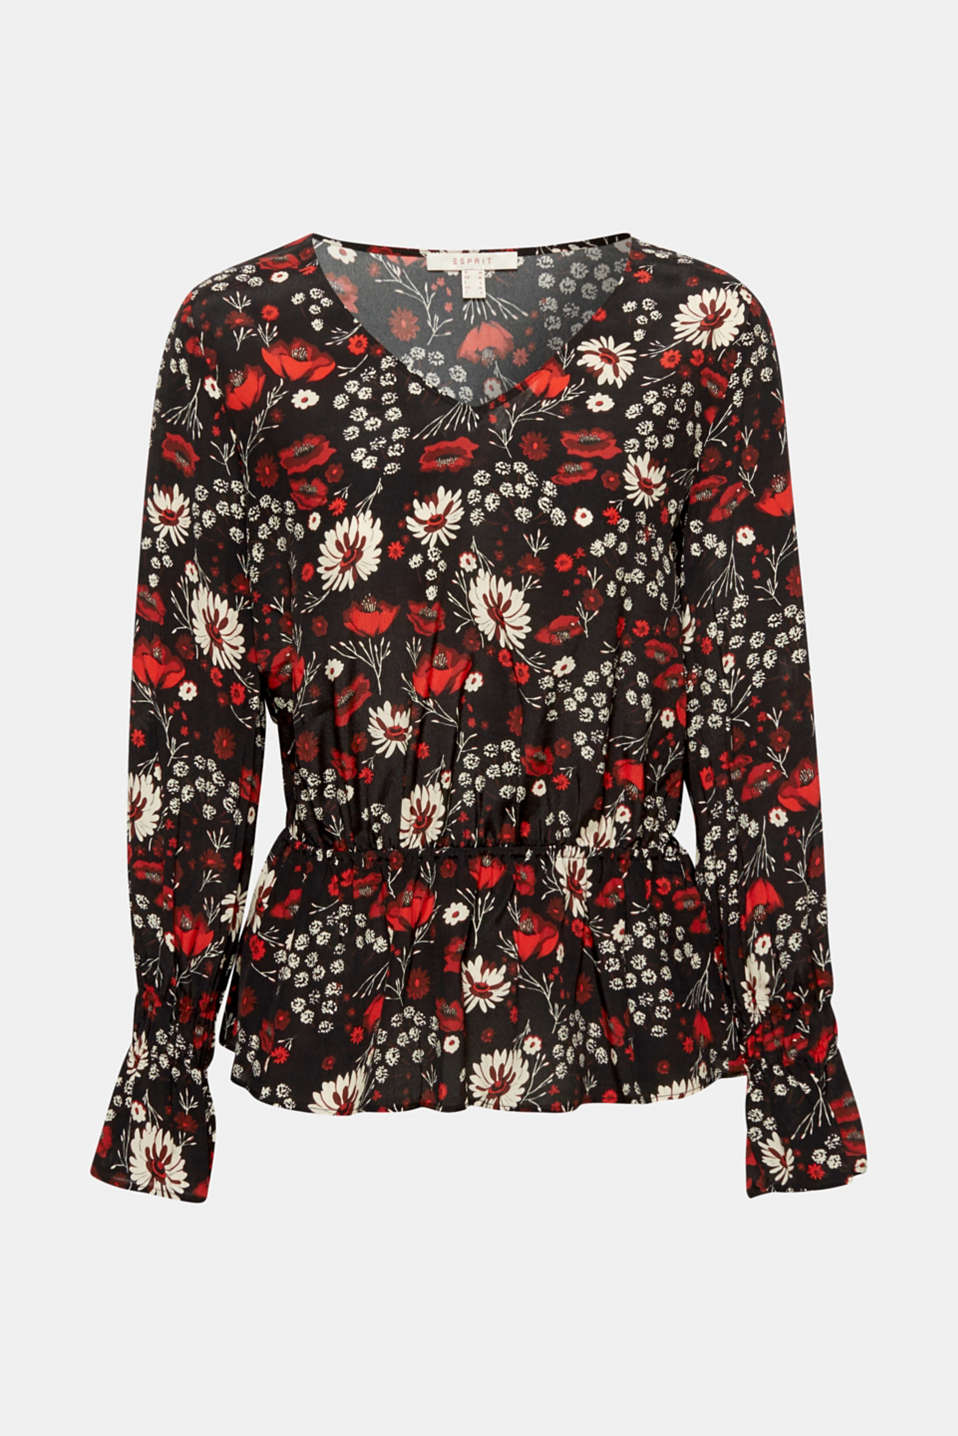 This flowing V-neck blouse with a decorative floral print, smocked balloon sleeves and a swirling peplum is perfect for your ultra-feminine, trendy look!